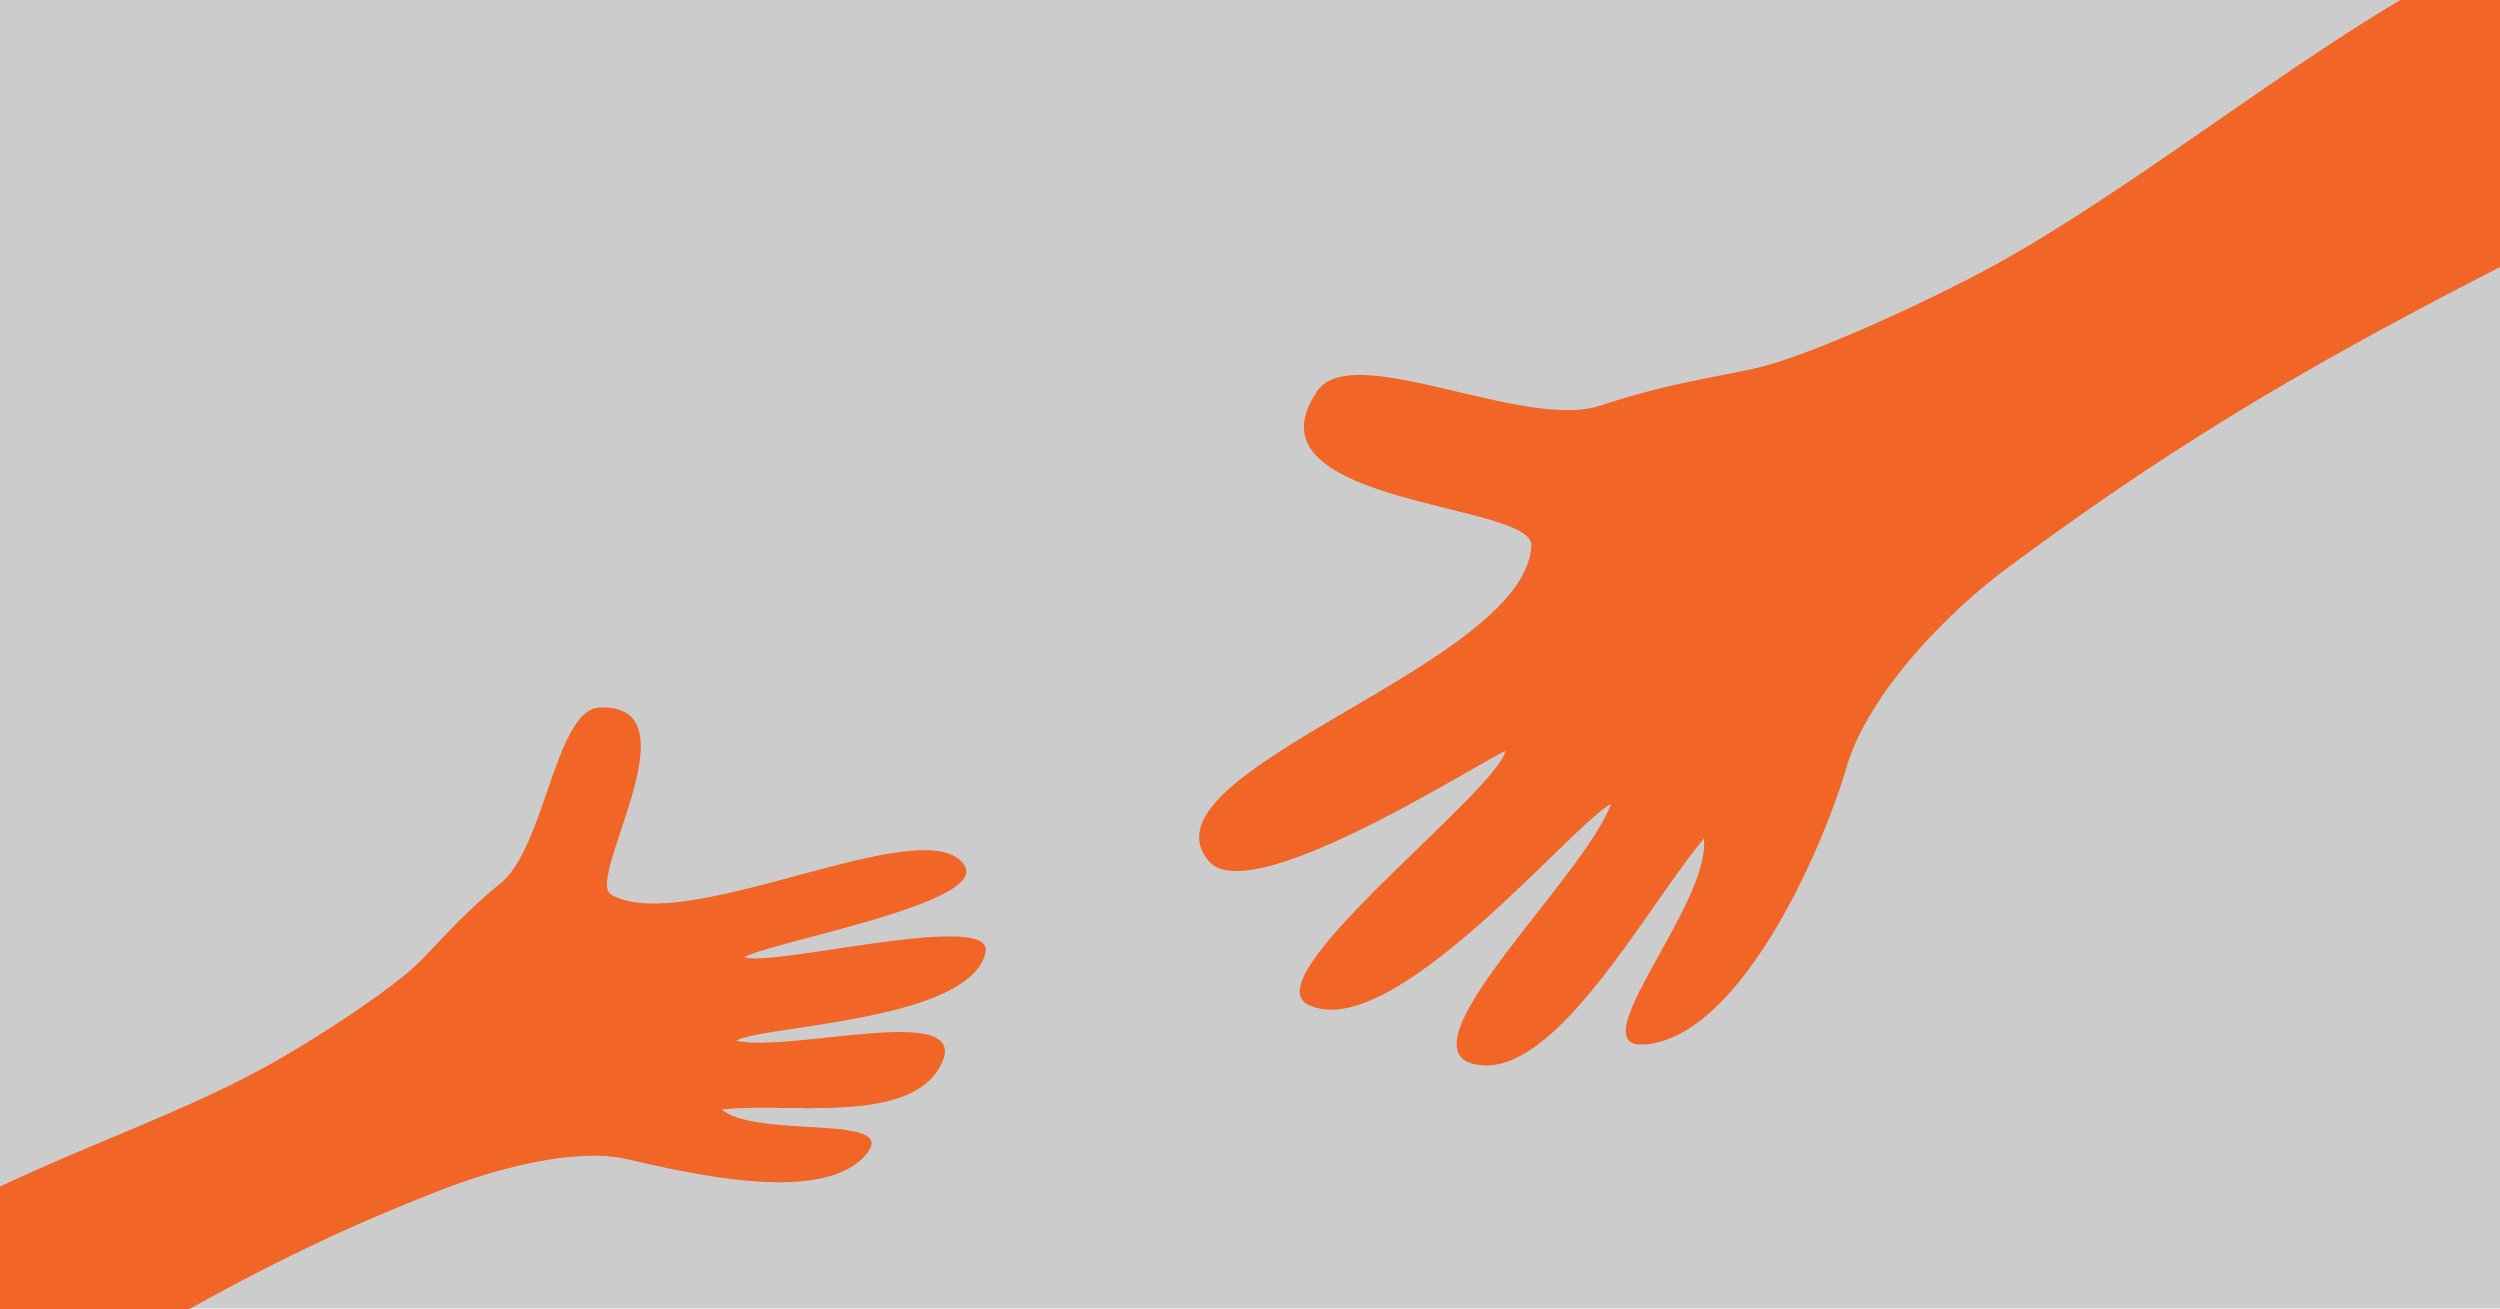 End-Family-Separation_notext_1200x628.png